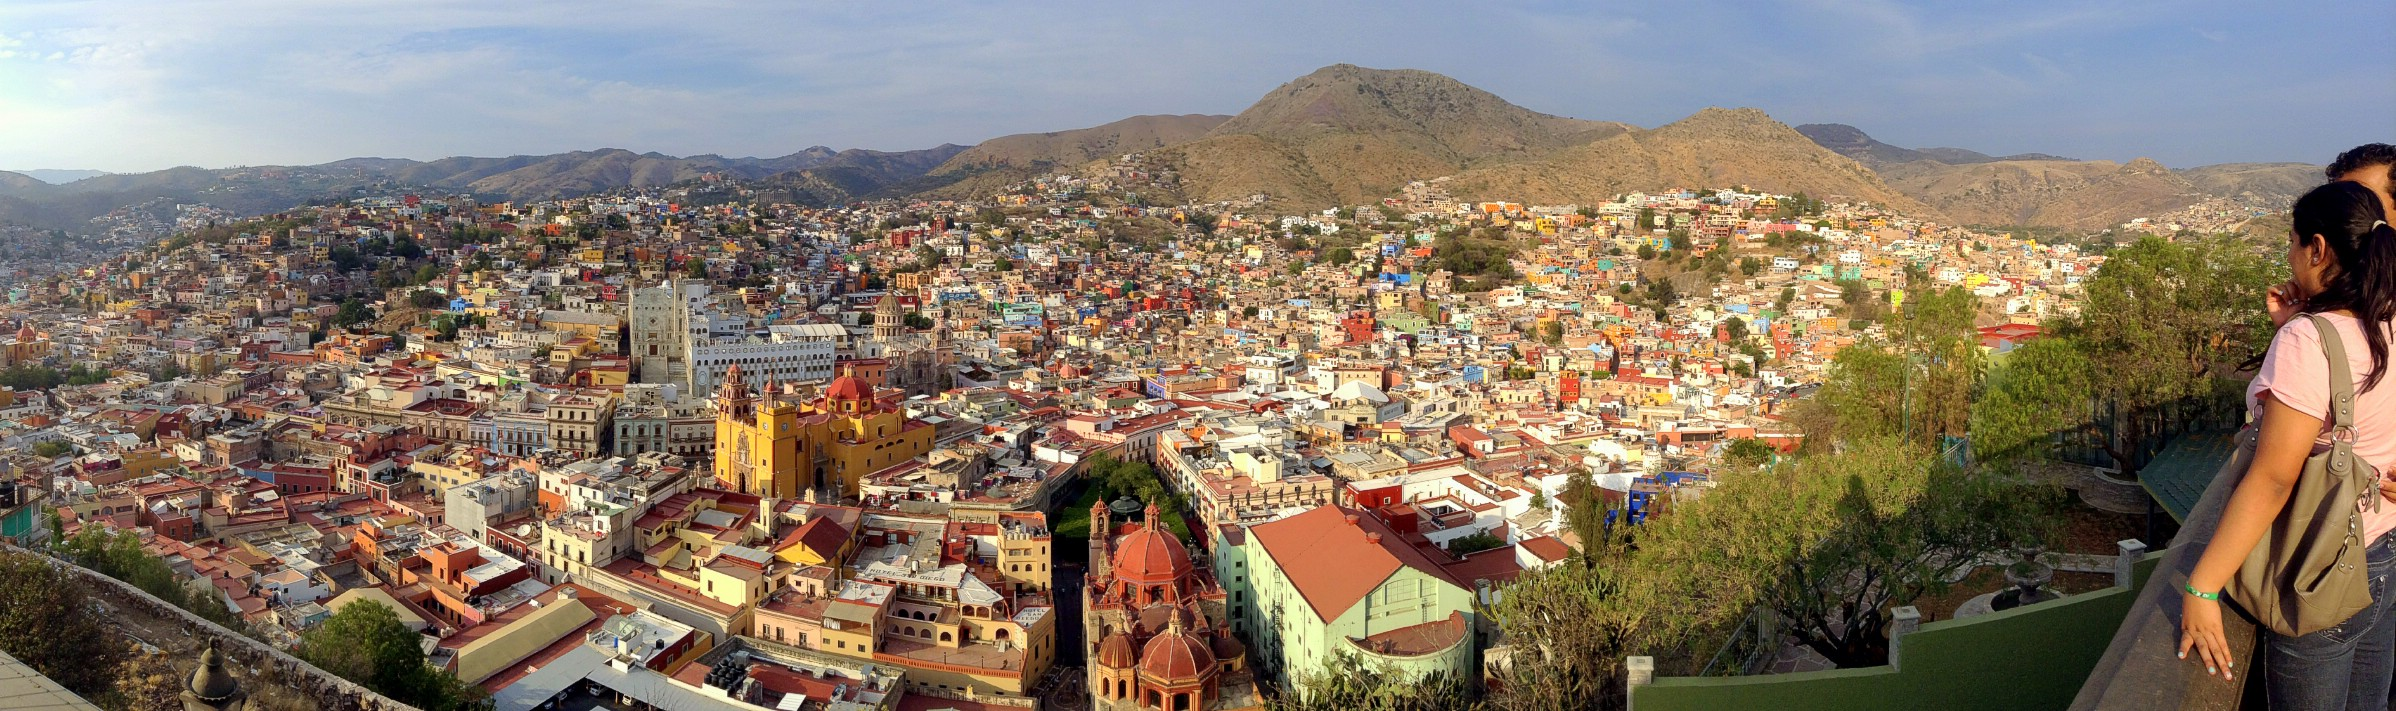 An iPod panorama overlooking Guanajuato as seen from Panoromica, Guanajuato, Mexico. April 23rd 2013 (iPod) *As with all images, click on the image to expand to full screen.*